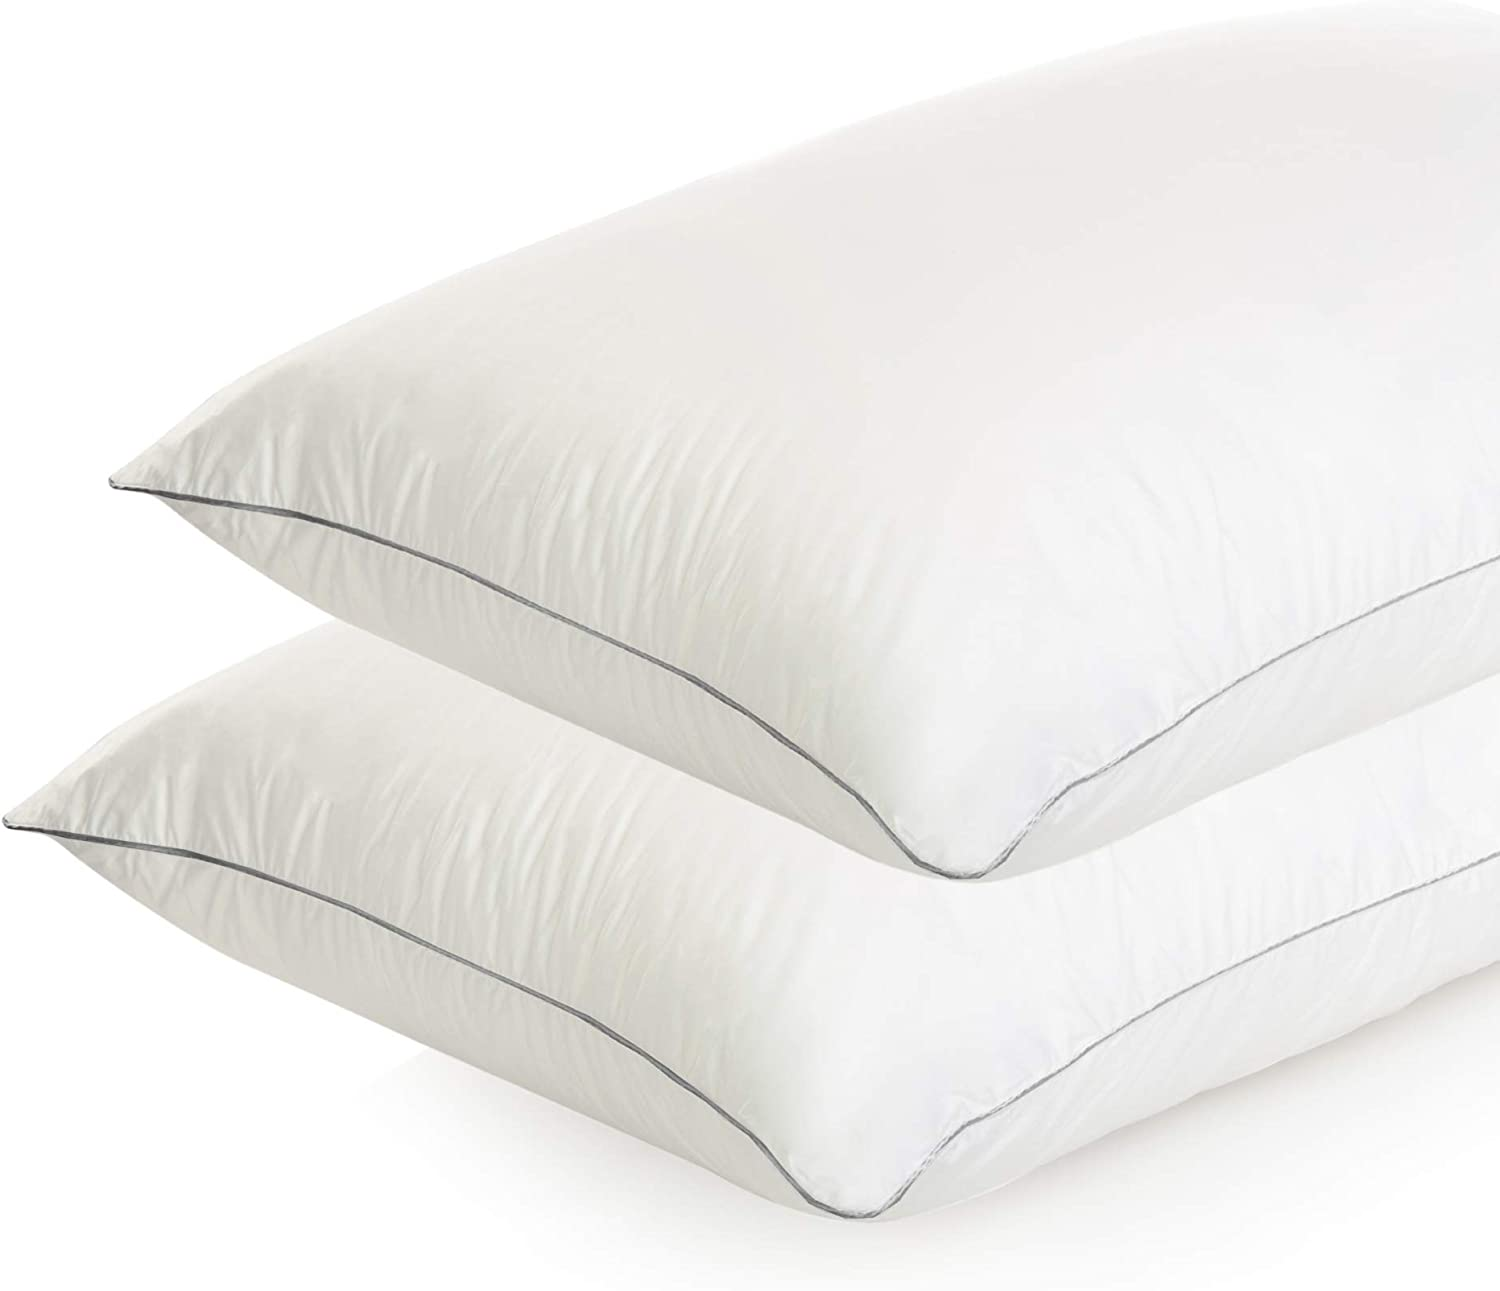 Bed Pillows Seasonal Wrap Introduction for Sleeping - Queen Size Manufacturer regenerated product of Pi Quality Hotel Set 2